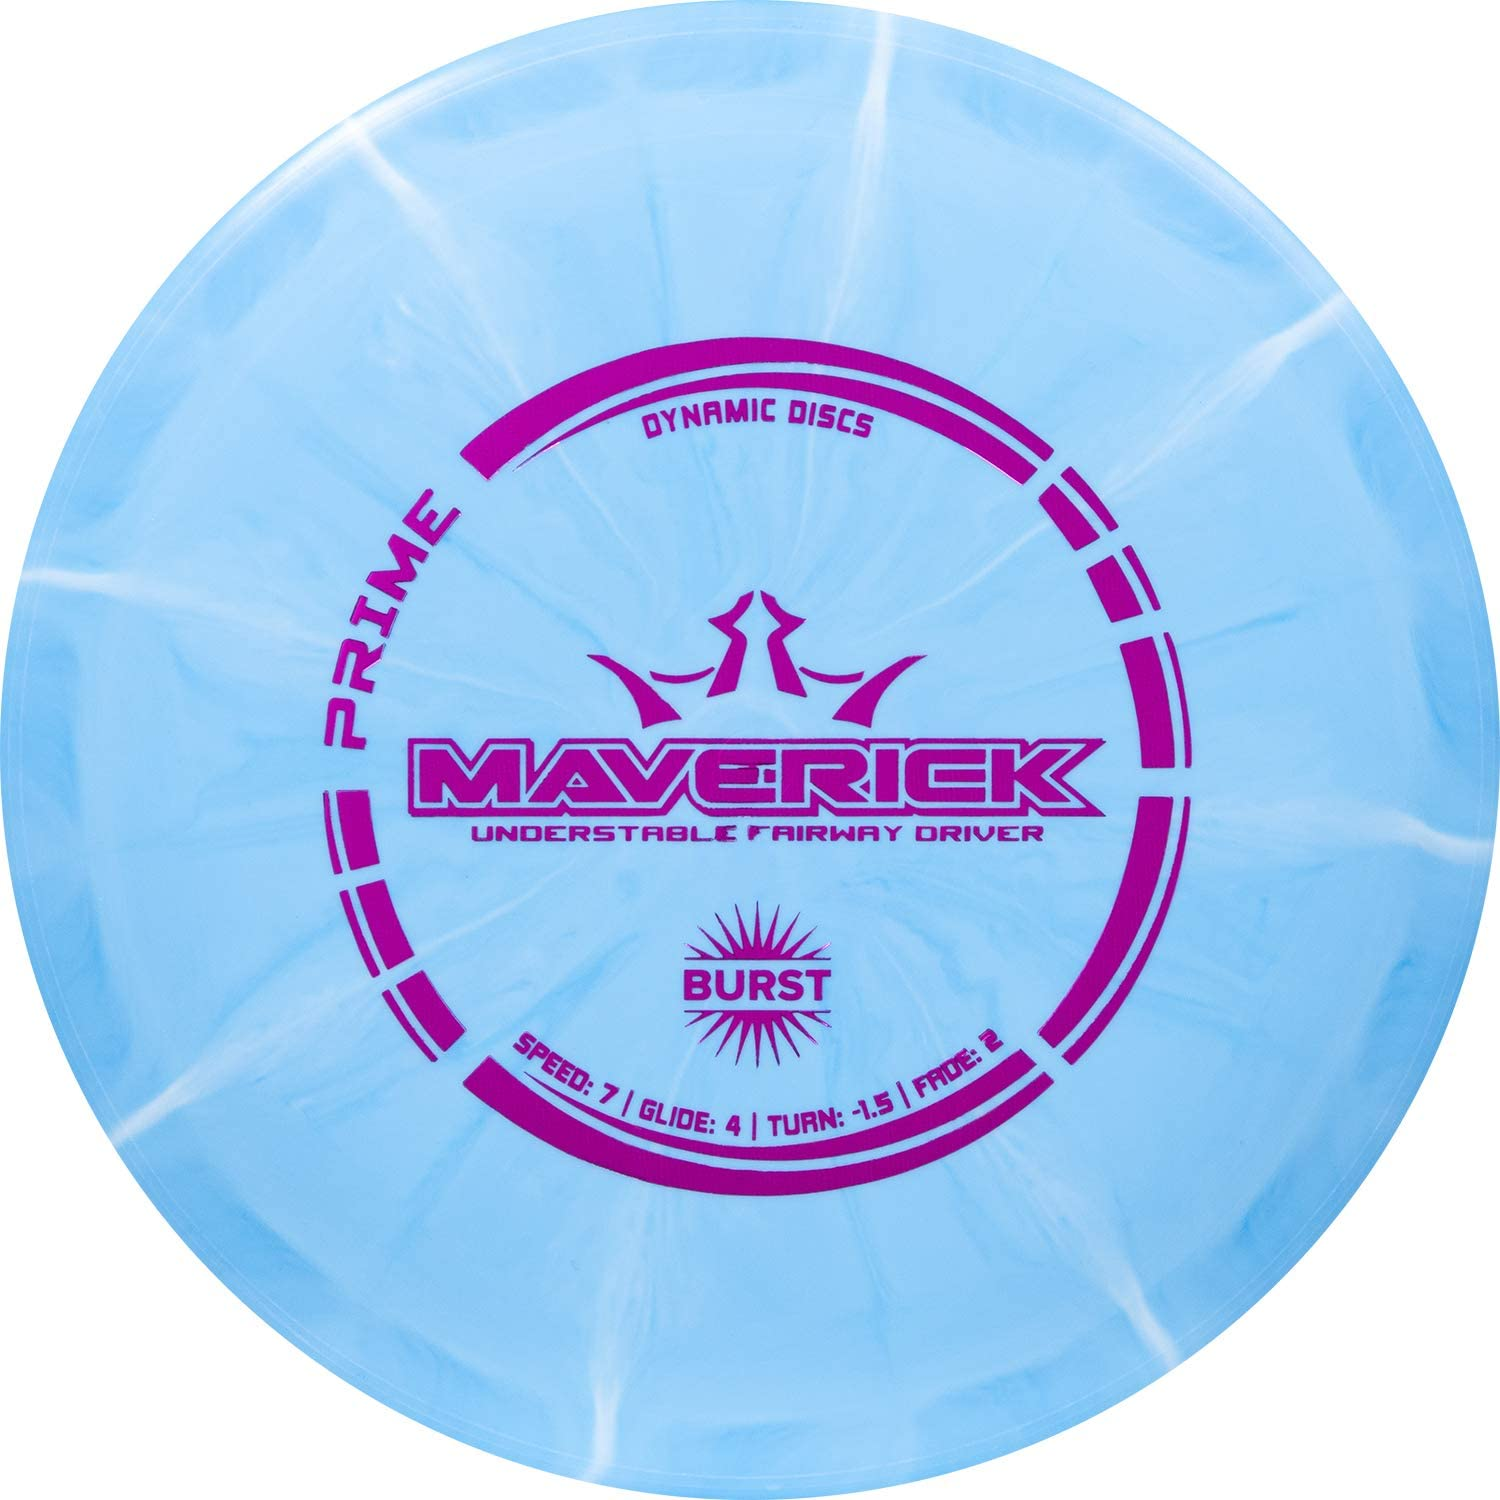 Dynamic Discs Prime Burst Maverick   Fairway Disc Golf Driver   Controllable and Versatile Frisbee Golf Disc   Beginner Friendly   170g Plus   Stamp Color and Burst Pattern Will Vary